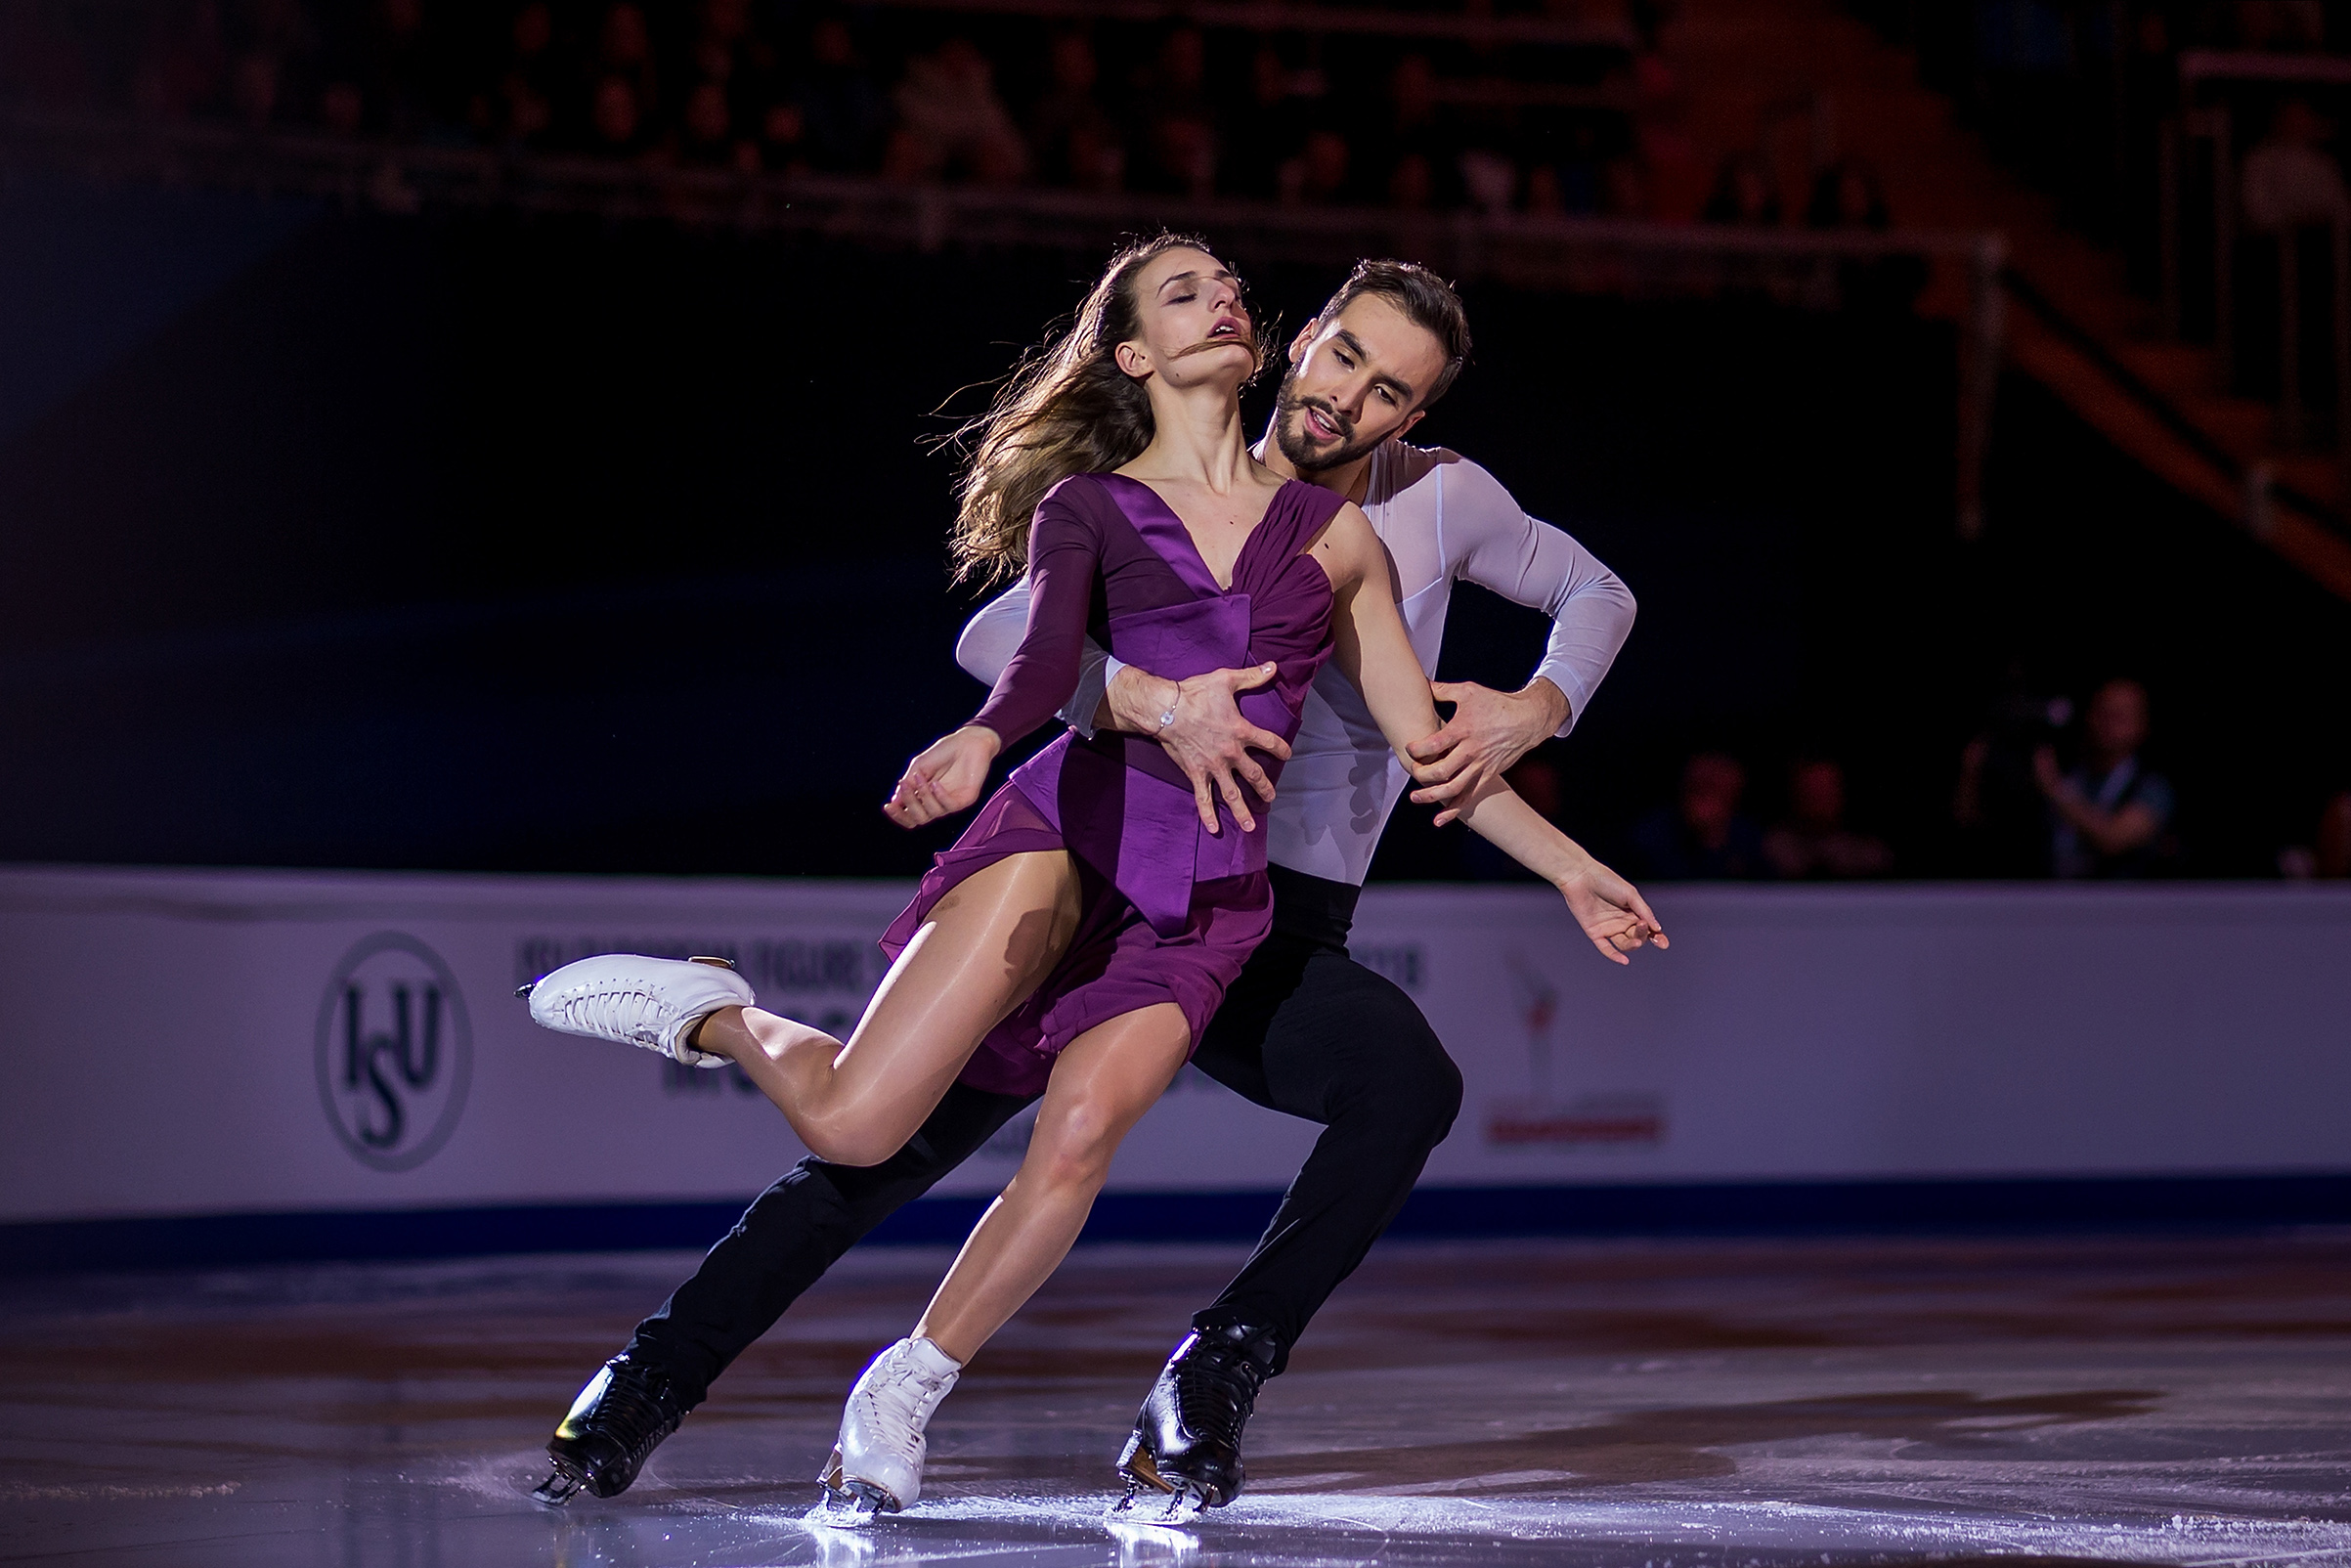 Gabriella Papadakis and Guillaume Cizeron of France perform in the Gala Exhibition during day five of the European Figure Skating Championships at Megasport Arena, in Moscow, Russia, on Jan. 21, 2018. Joosep Martinson—ISU/Getty Images